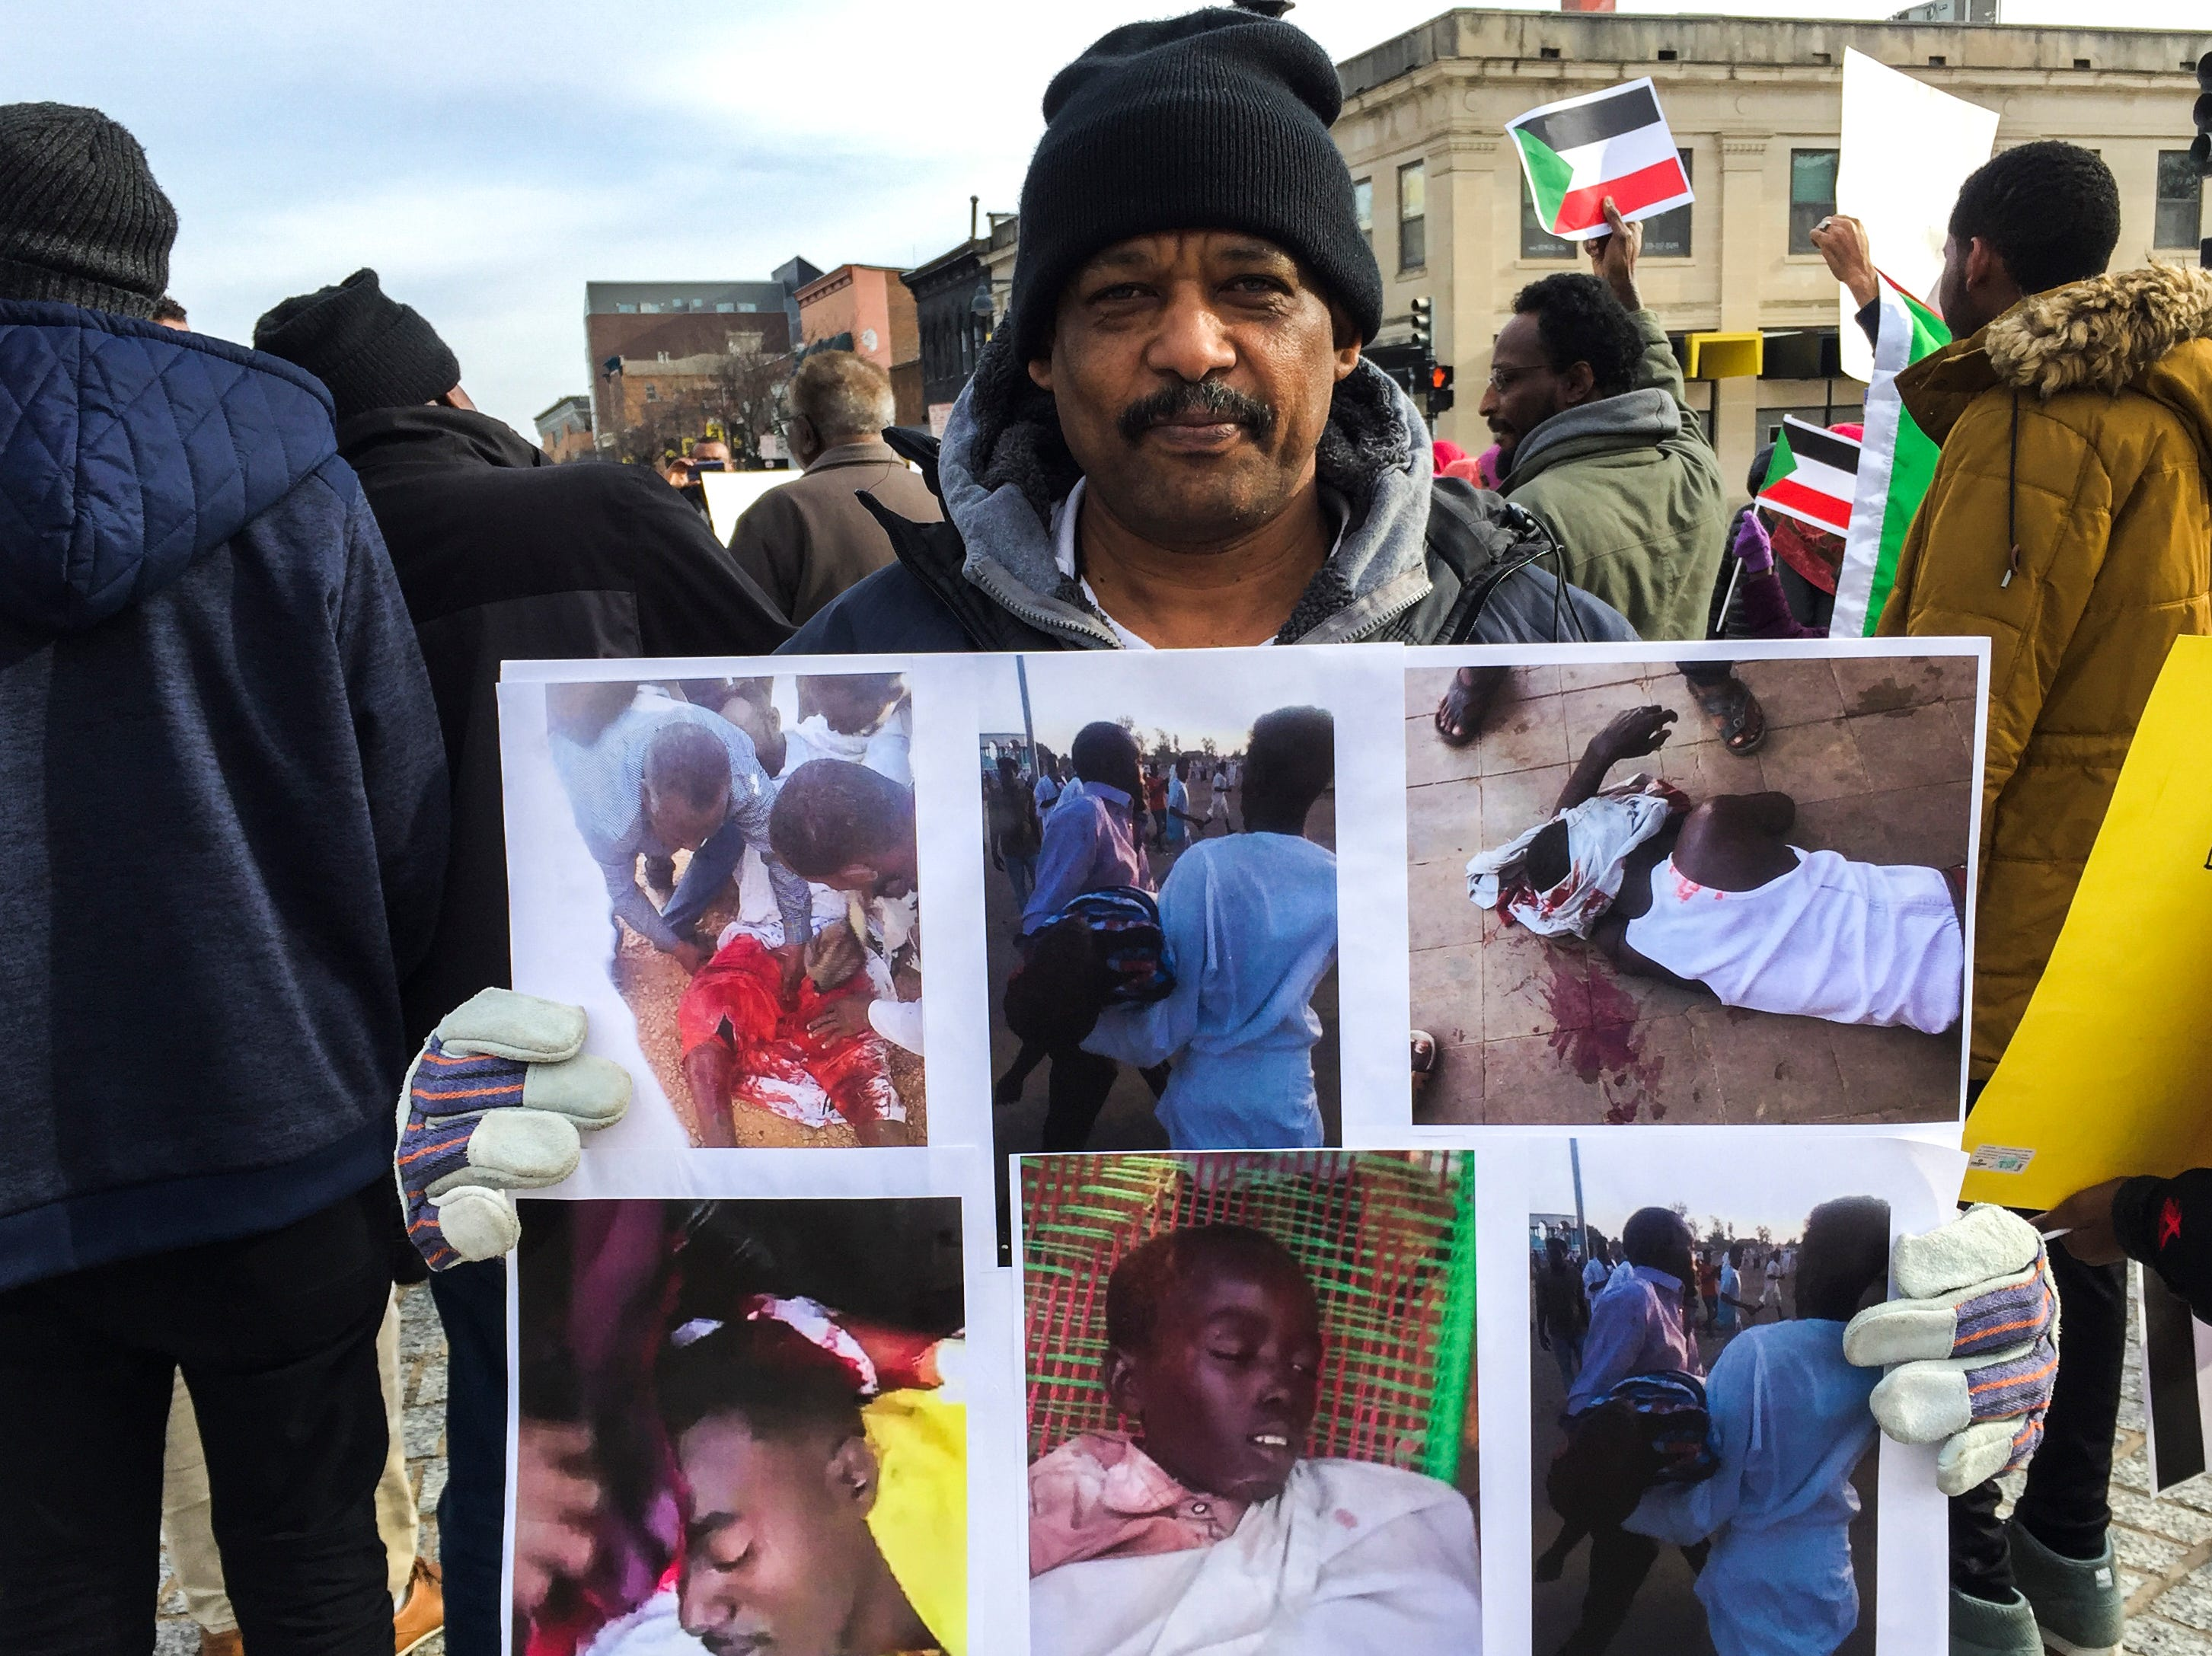 Fakhreldein Hasaballah holds a poster with images of murdered protesters in Sudan while Sudanese members of the Iowa City community gather during a peaceful protest in opposition to the killings in their home country on Monday, Dec. 24, 2018, in downtown Iowa City. Hasaballah has lived in Iowa for two years after waiting to receive a visa from a lottery pool for two years.